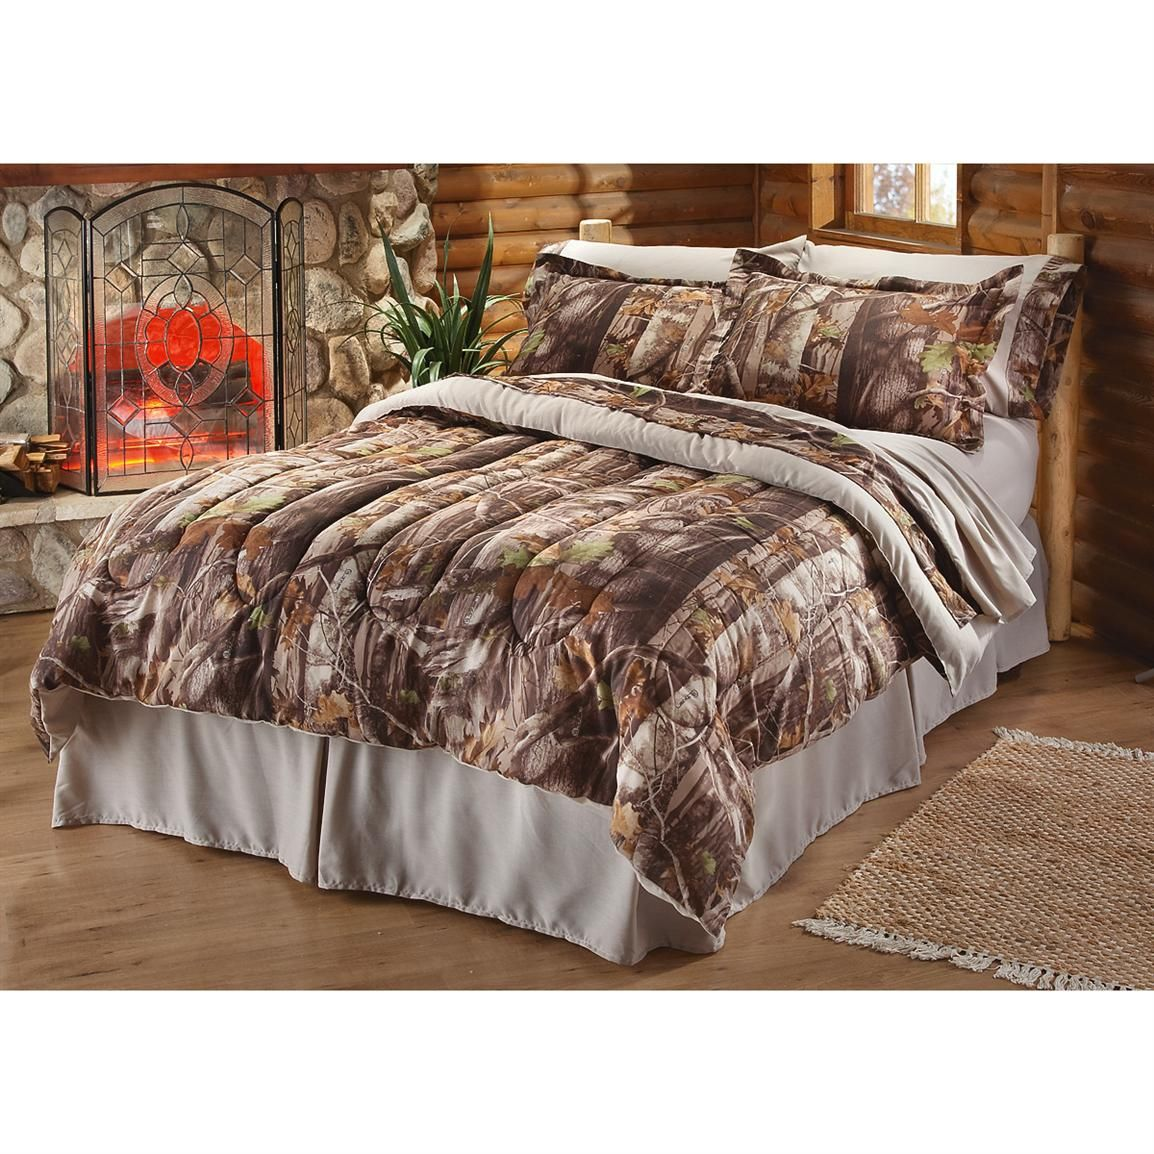 Get Comfy In Camo With This Complete Bed Set From Next Camo Comes